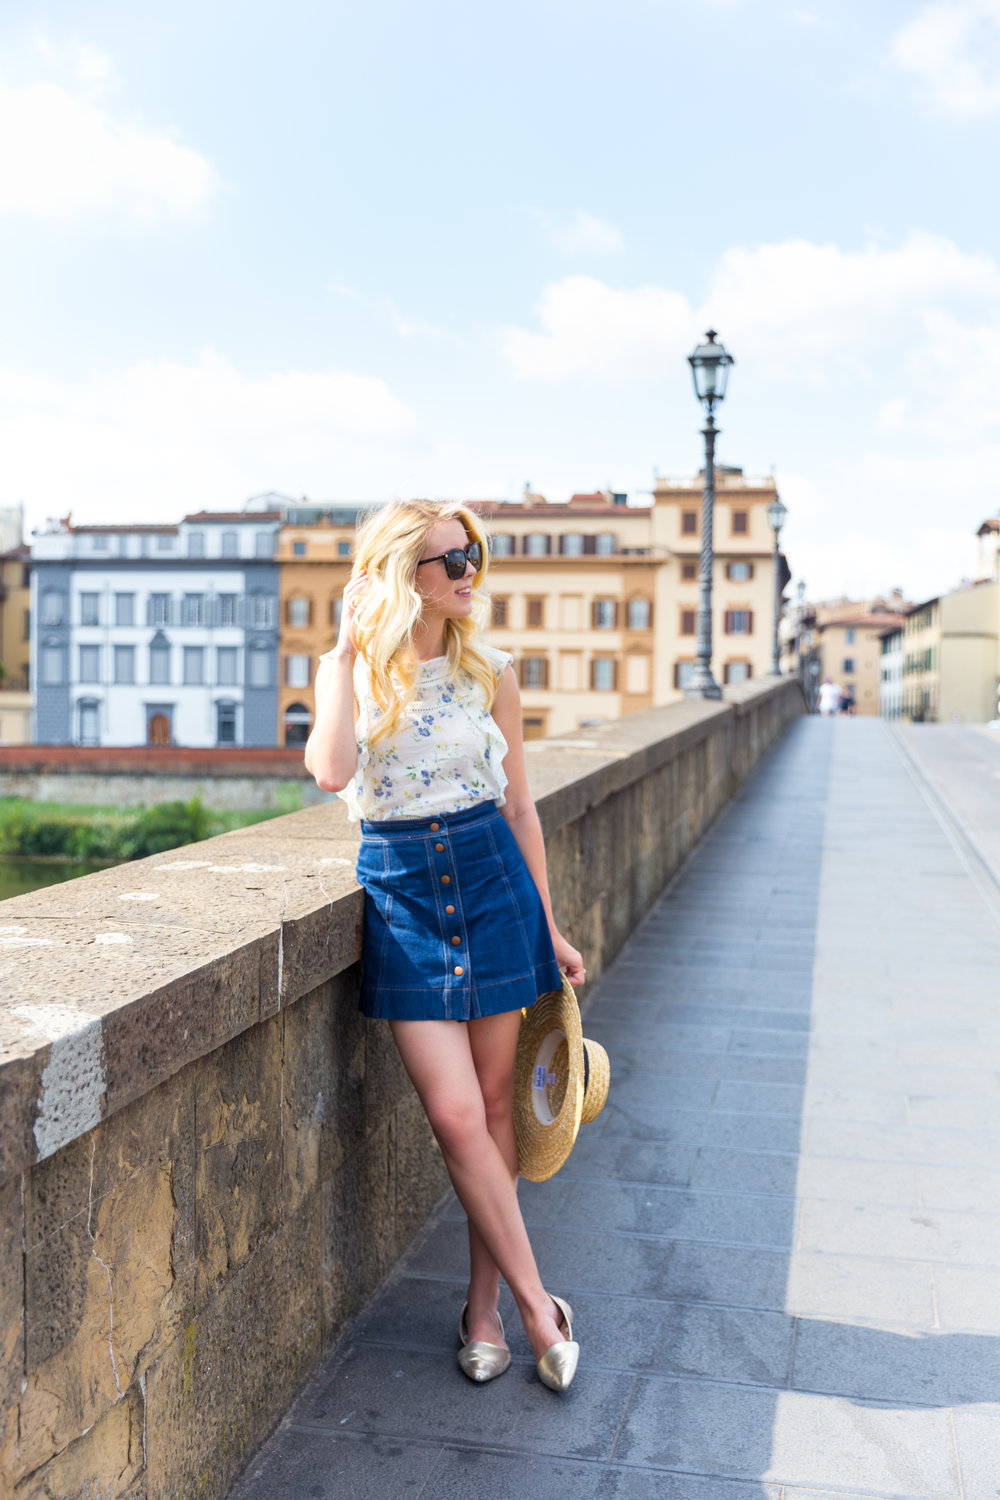 Summer Travel Fashion Florence Italy-5.jpg